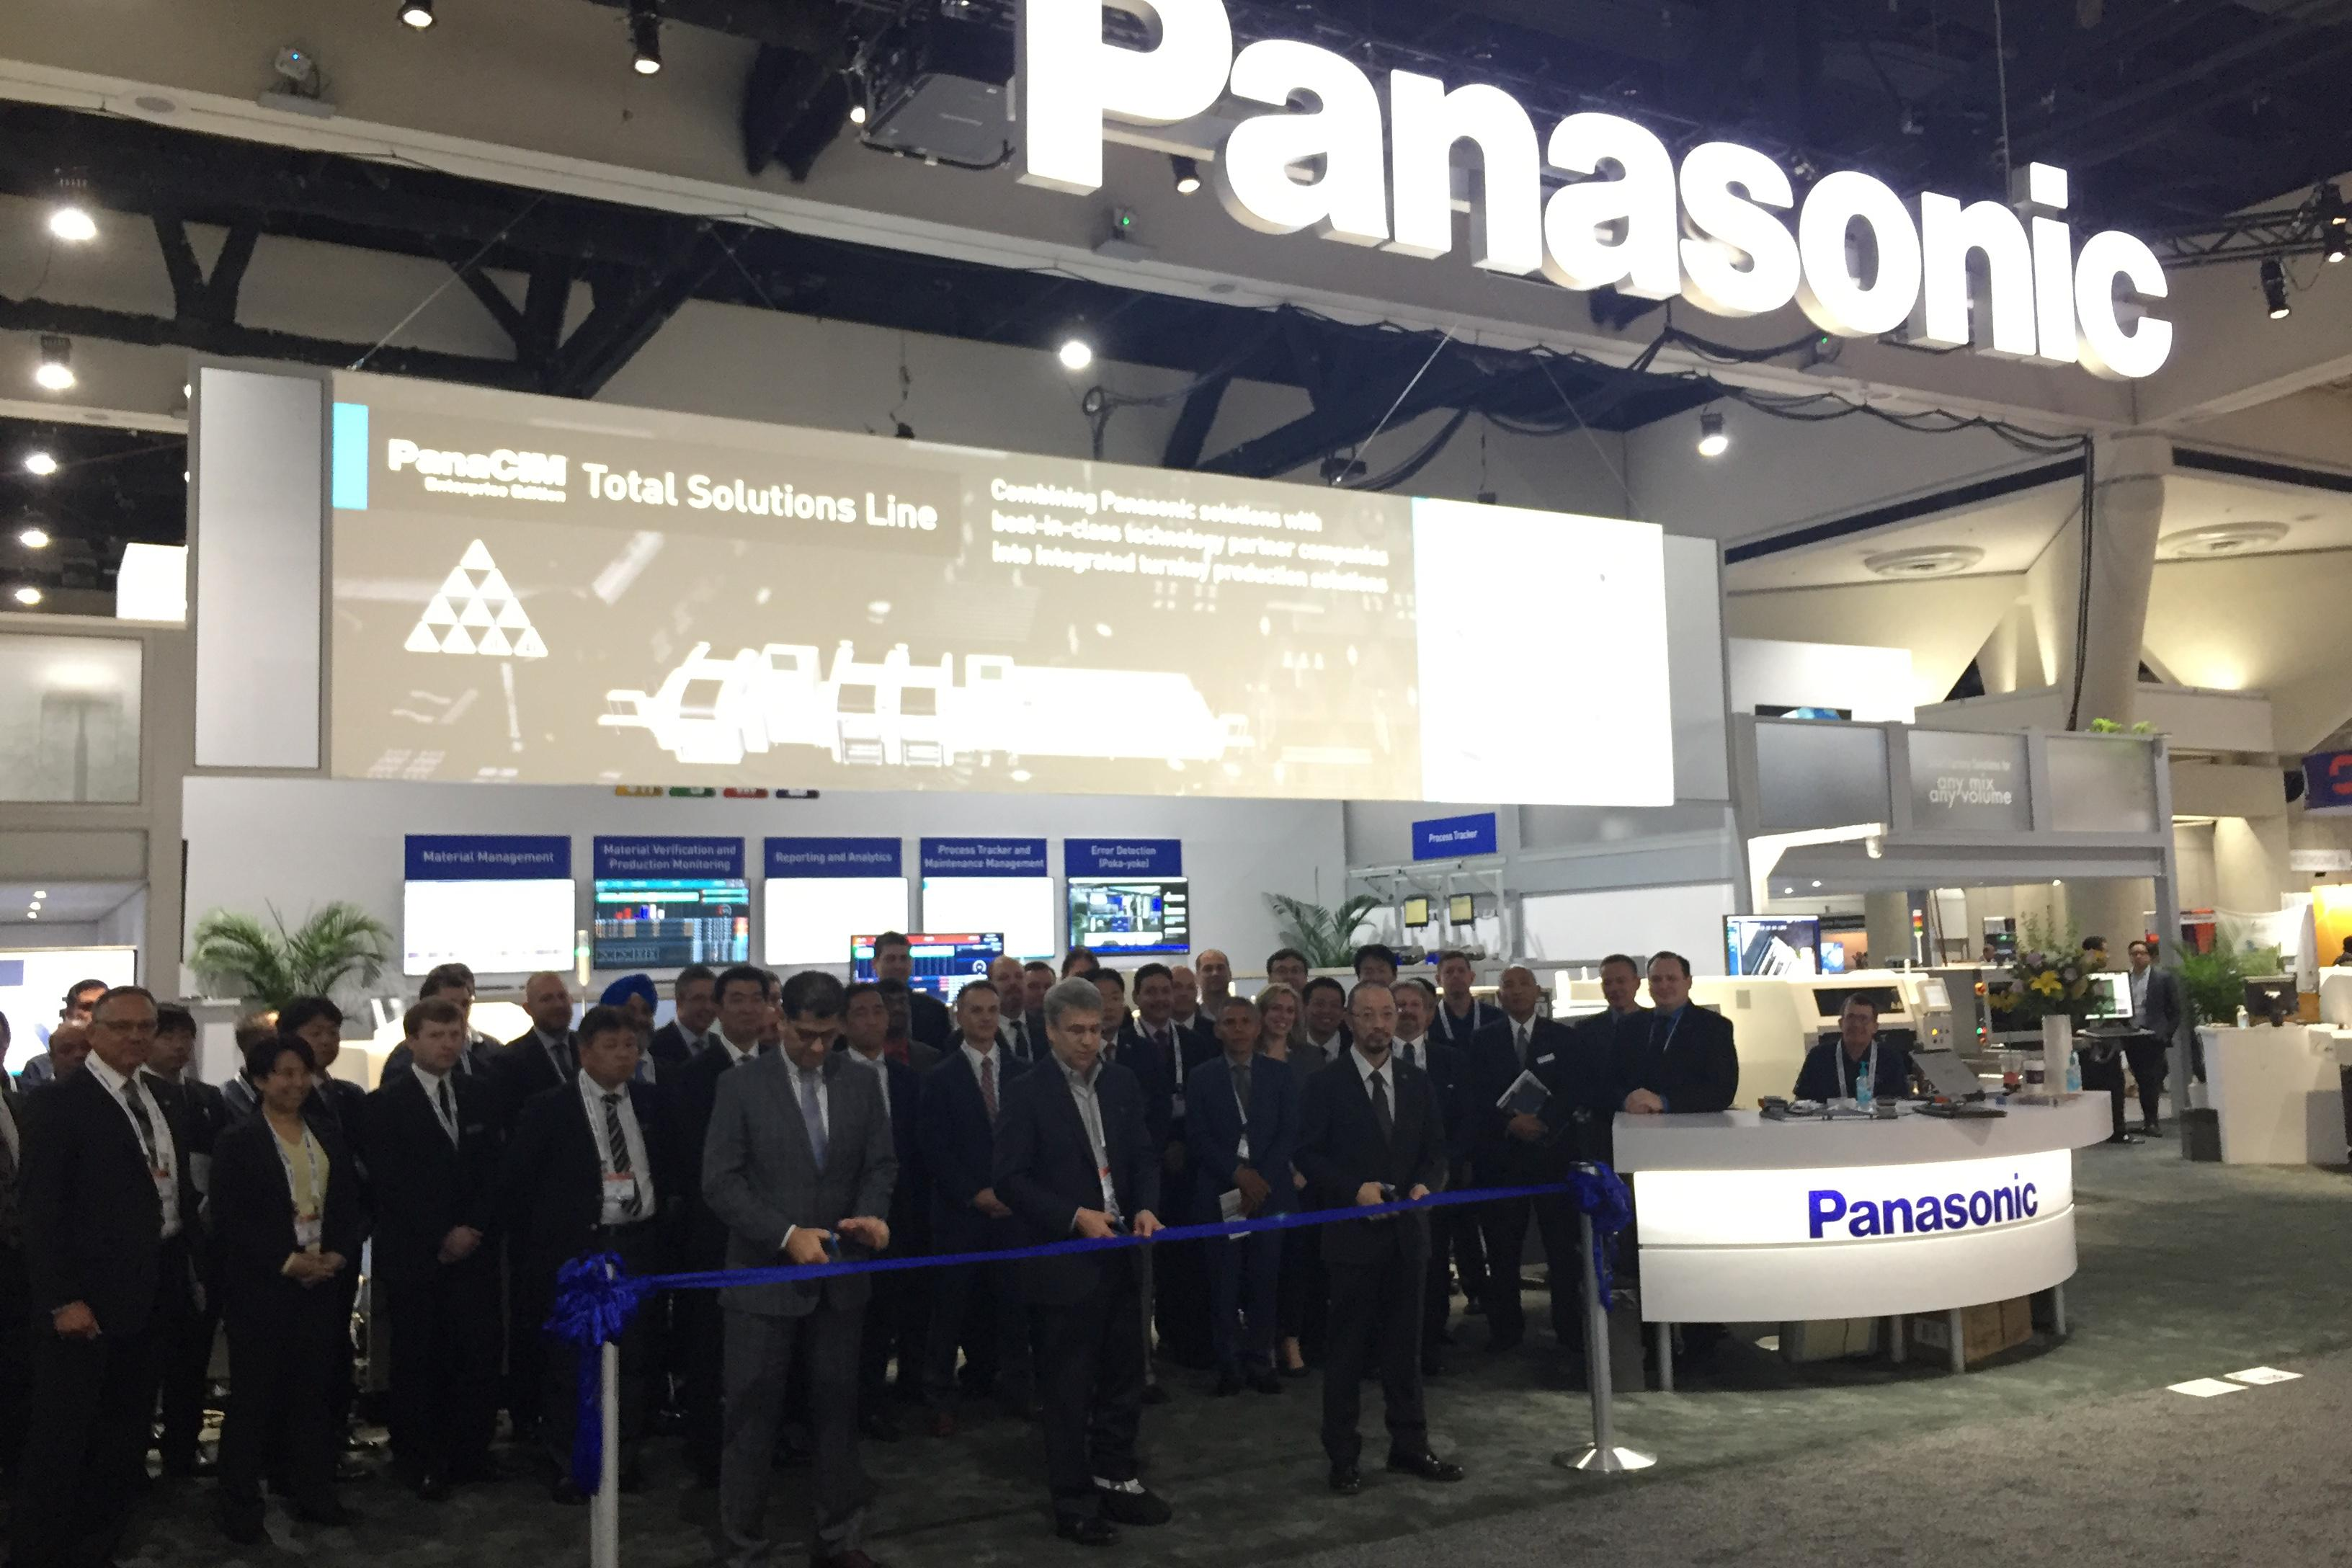 photo: Panasonic's ribbon-cutting ceremony at APEX 2018